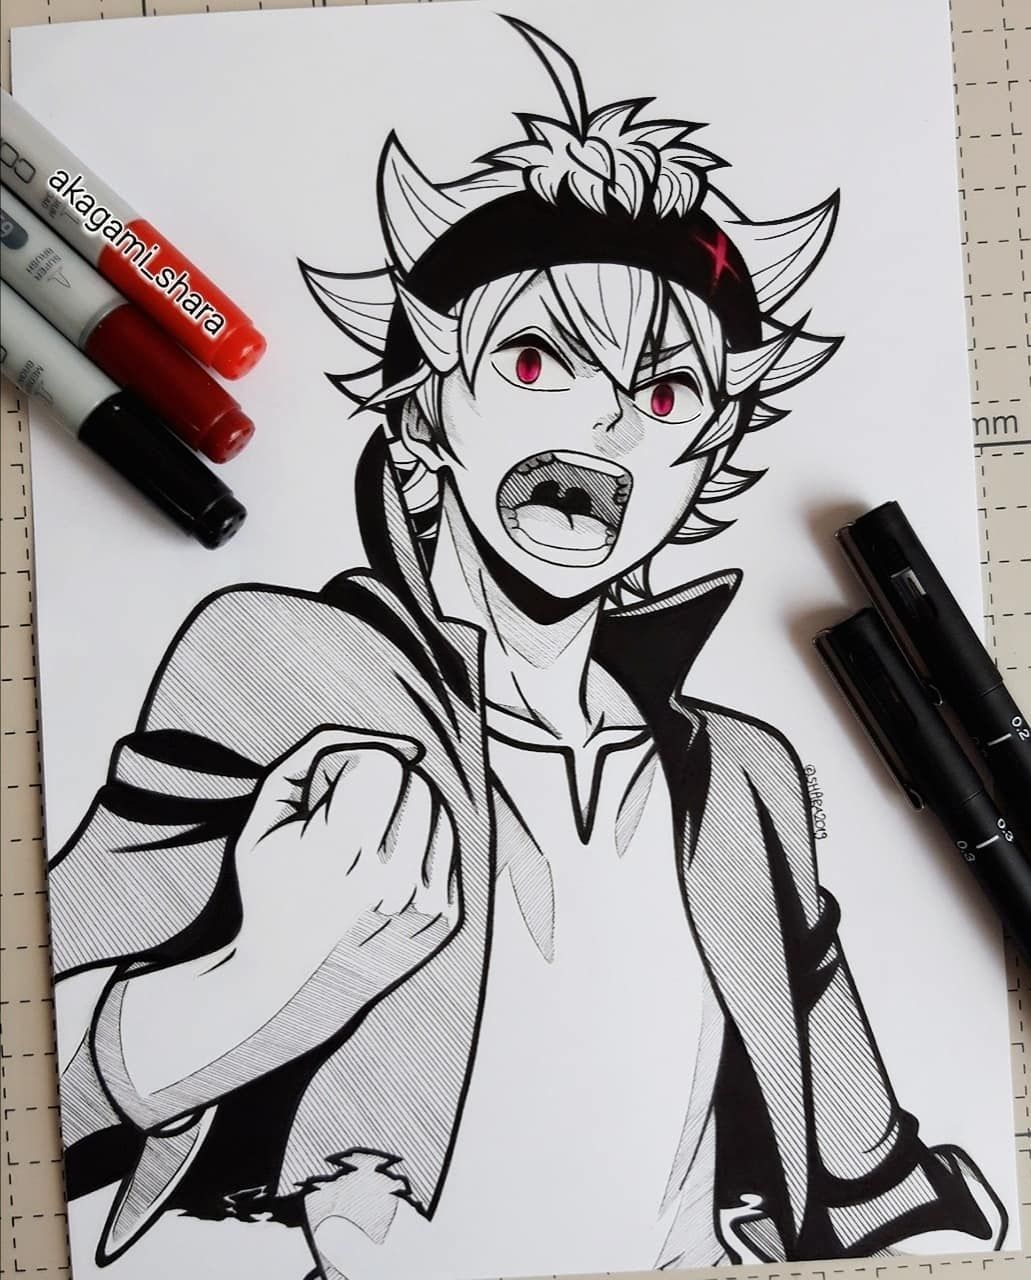 Pin By Mustafa Kaya On Gismos Black Clover Anime Black Clover Manga Anime Drawings Sketches (まだまだ) a japanese phrase that means not yet or not good enough. black clover manga anime drawings sketches